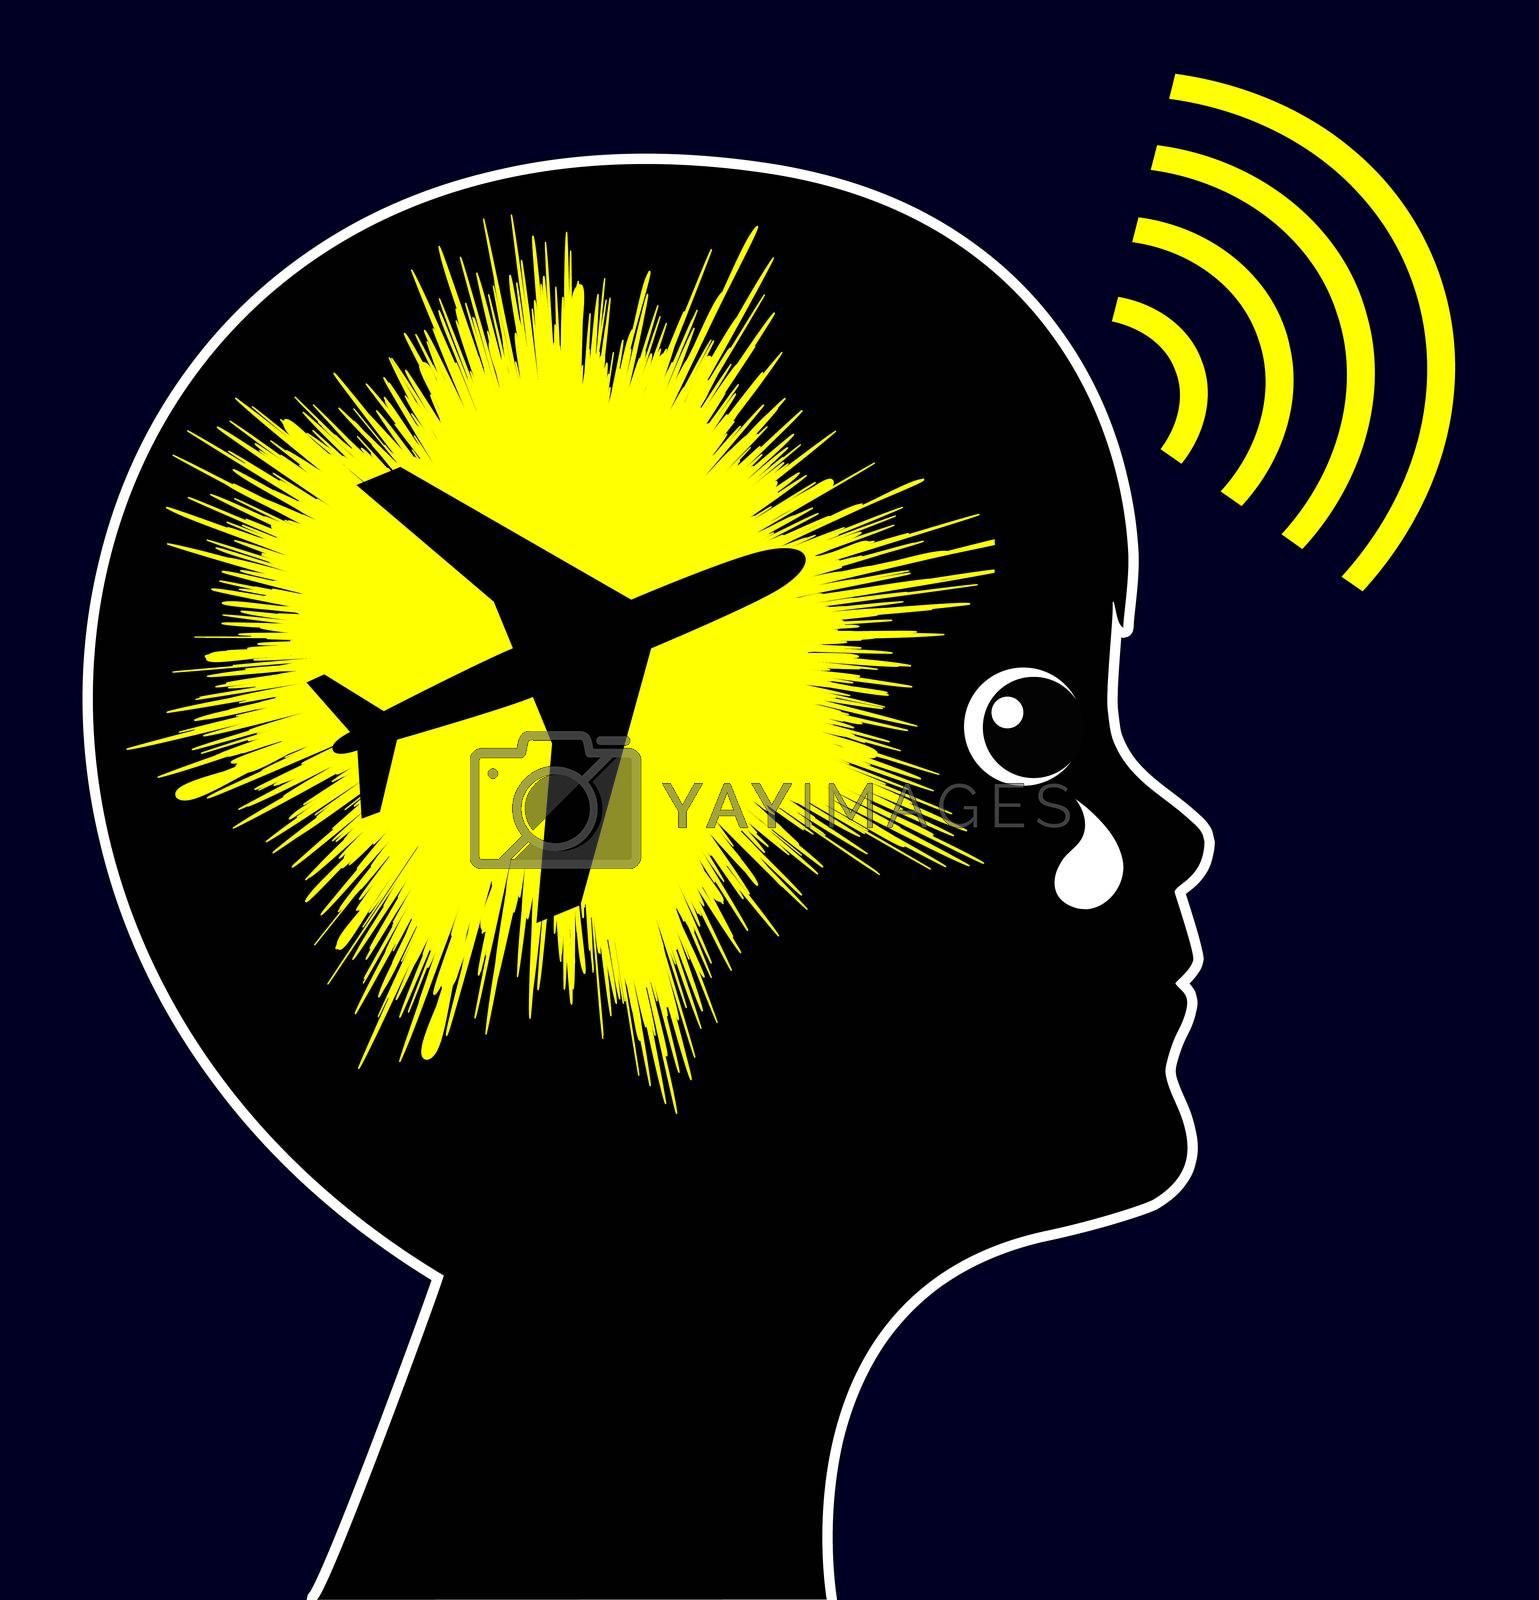 Noise pollution from airports have negative impact on the health of children